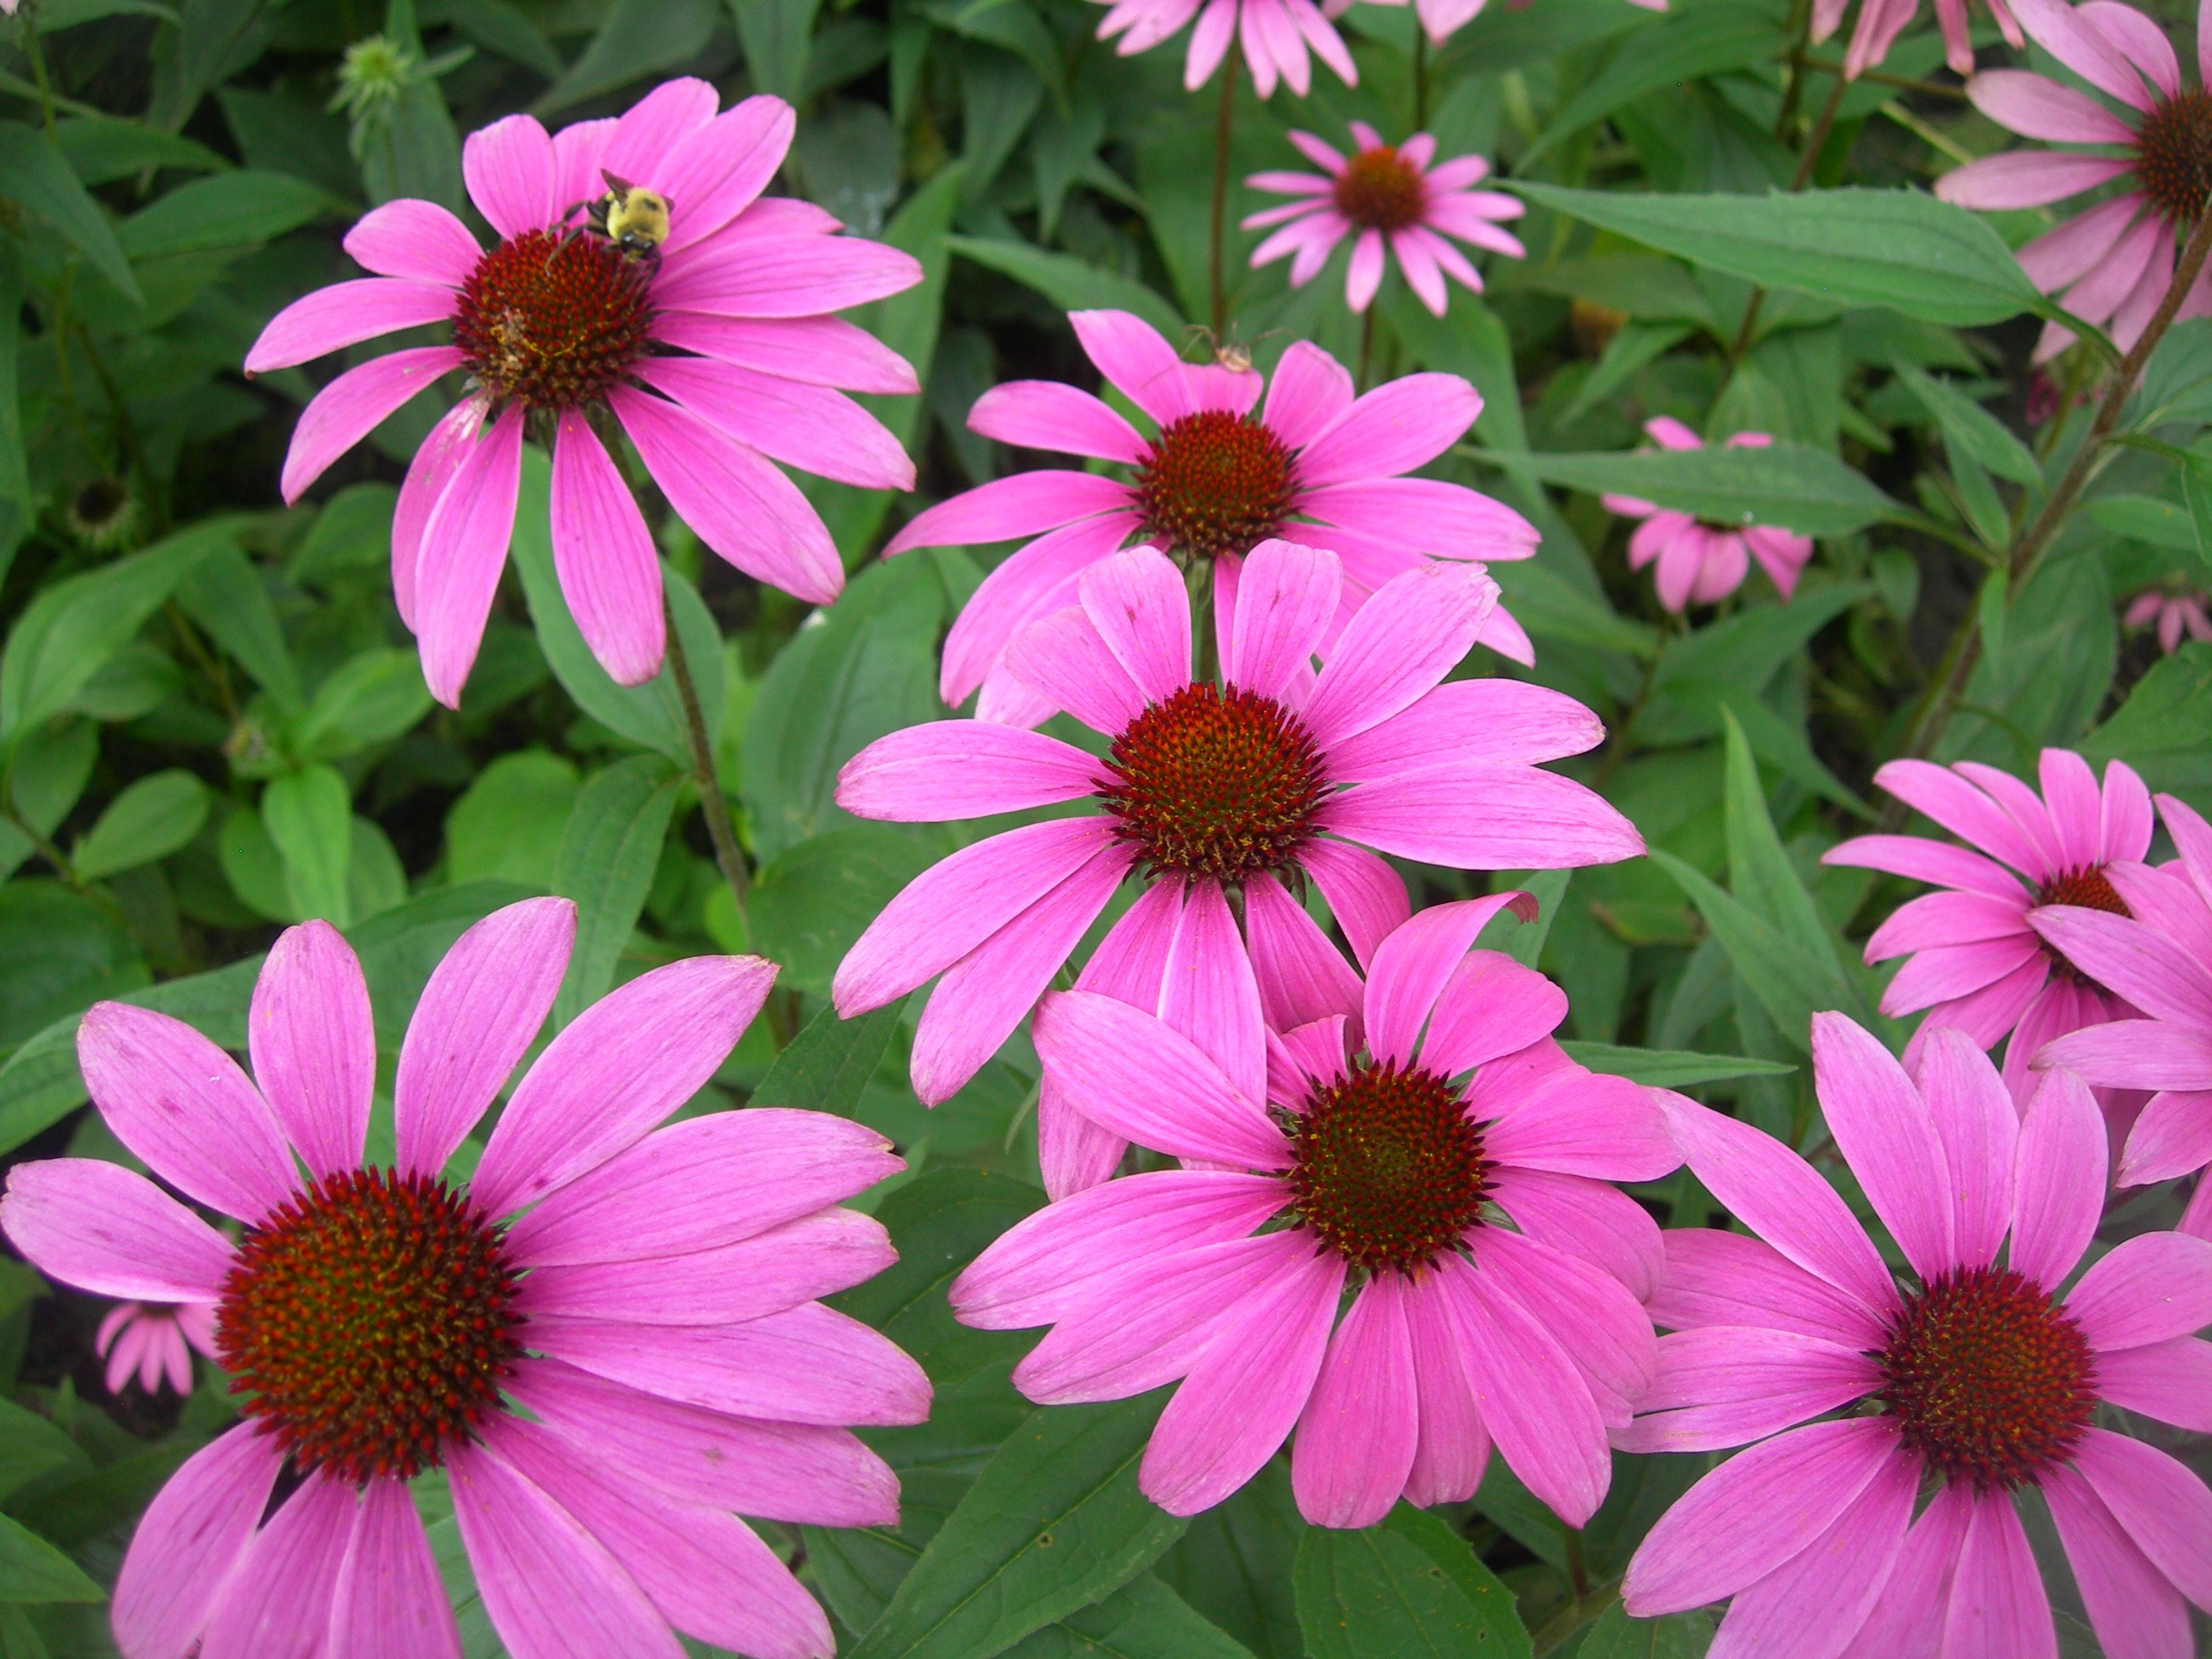 Echinacea is an herbal remedy that should not be given to children under 12, the UK's drugs watchdog has warned parents